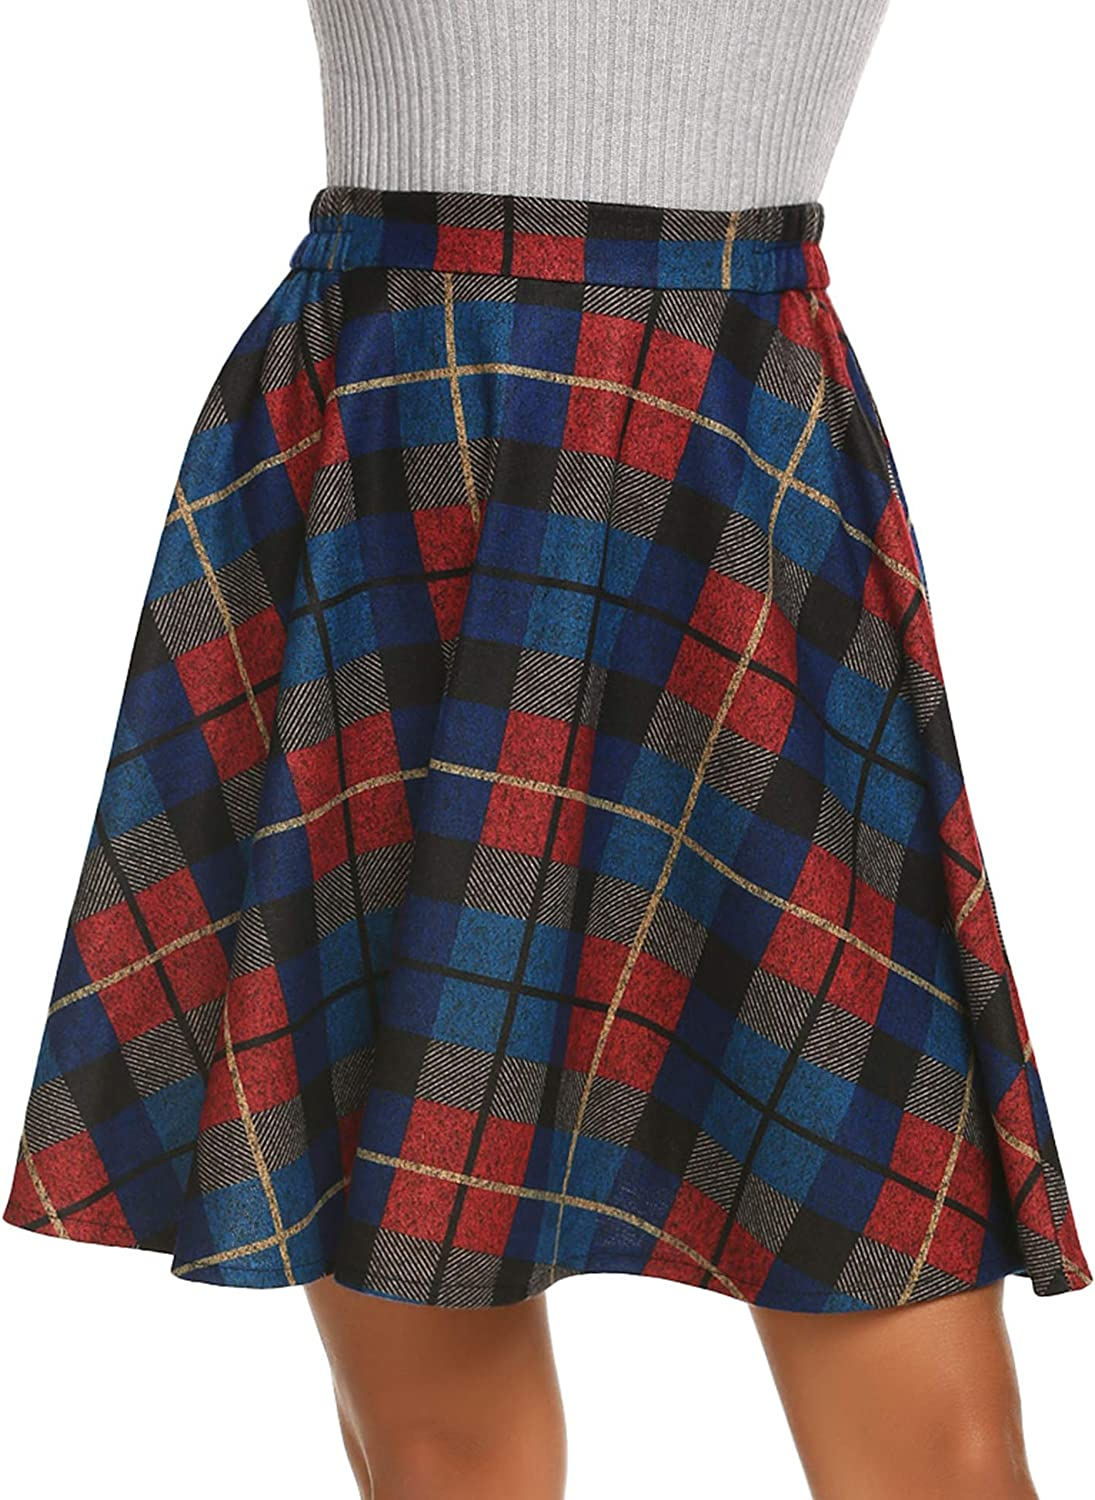 Hotouch Women's Plaid Flared Skirt A-Line High Elastic Tartan Pleated Winter Warm Wool Skirts Short